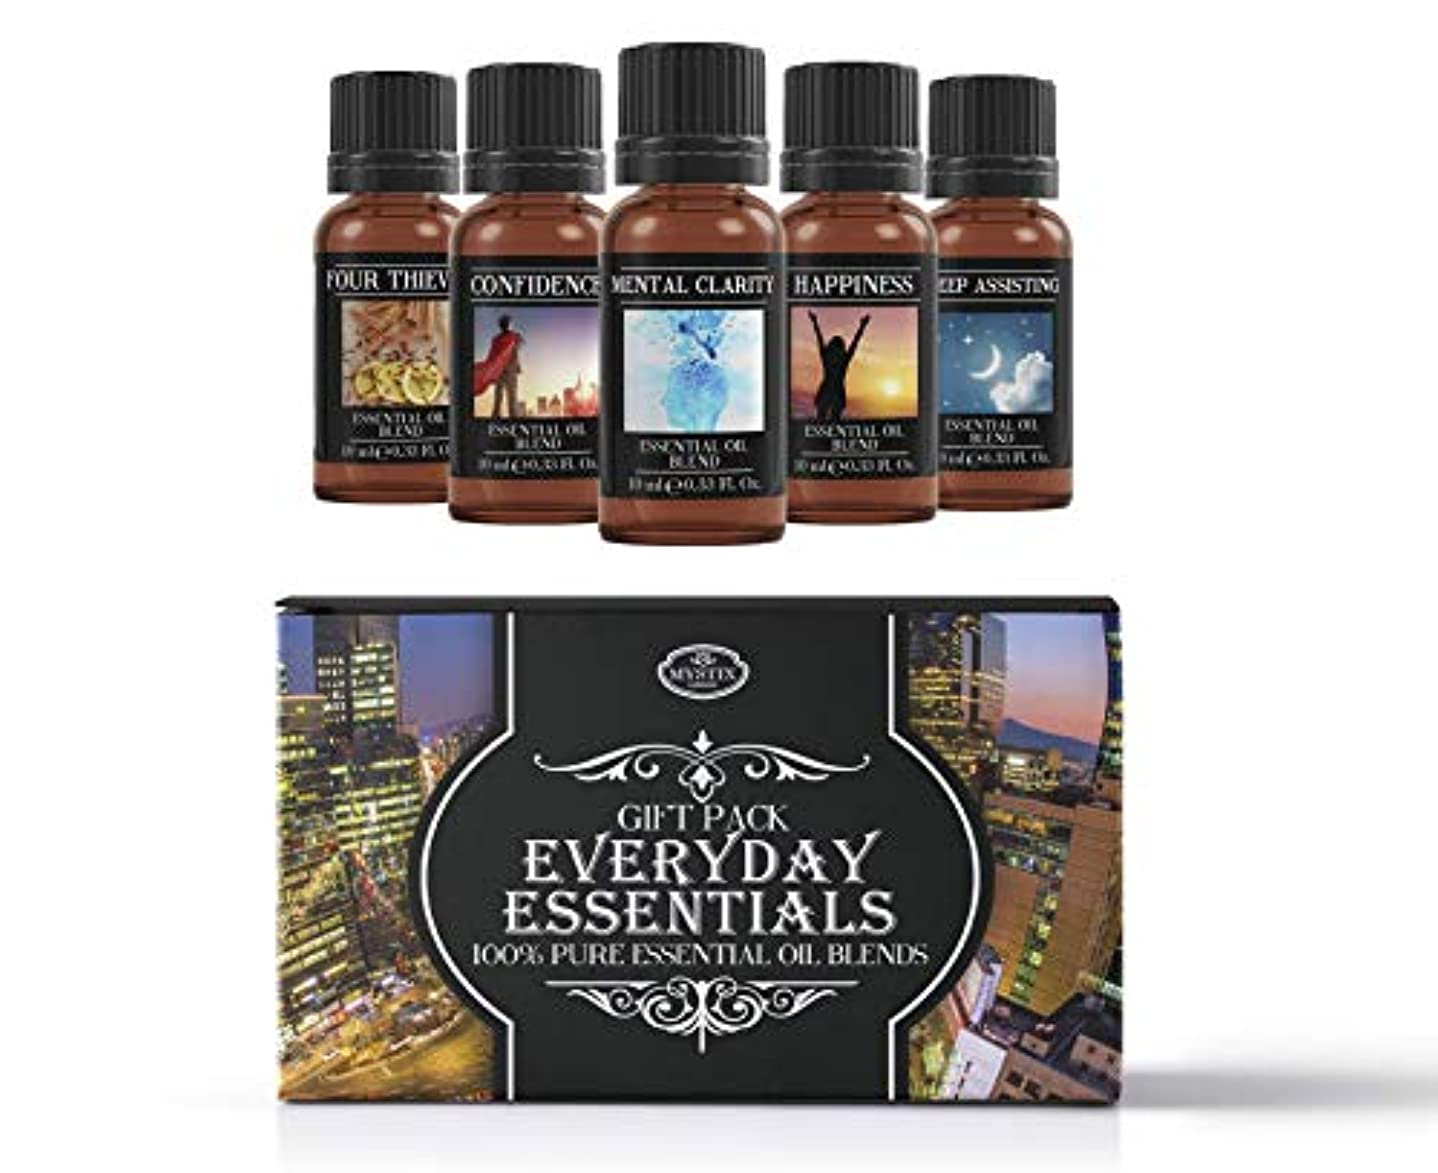 州新しい意味知らせるEveryday Essentials | Essential Oil Blend Gift Pack | Confidence, Four Thieves, Happiness, Mental Clarity, Sleep...